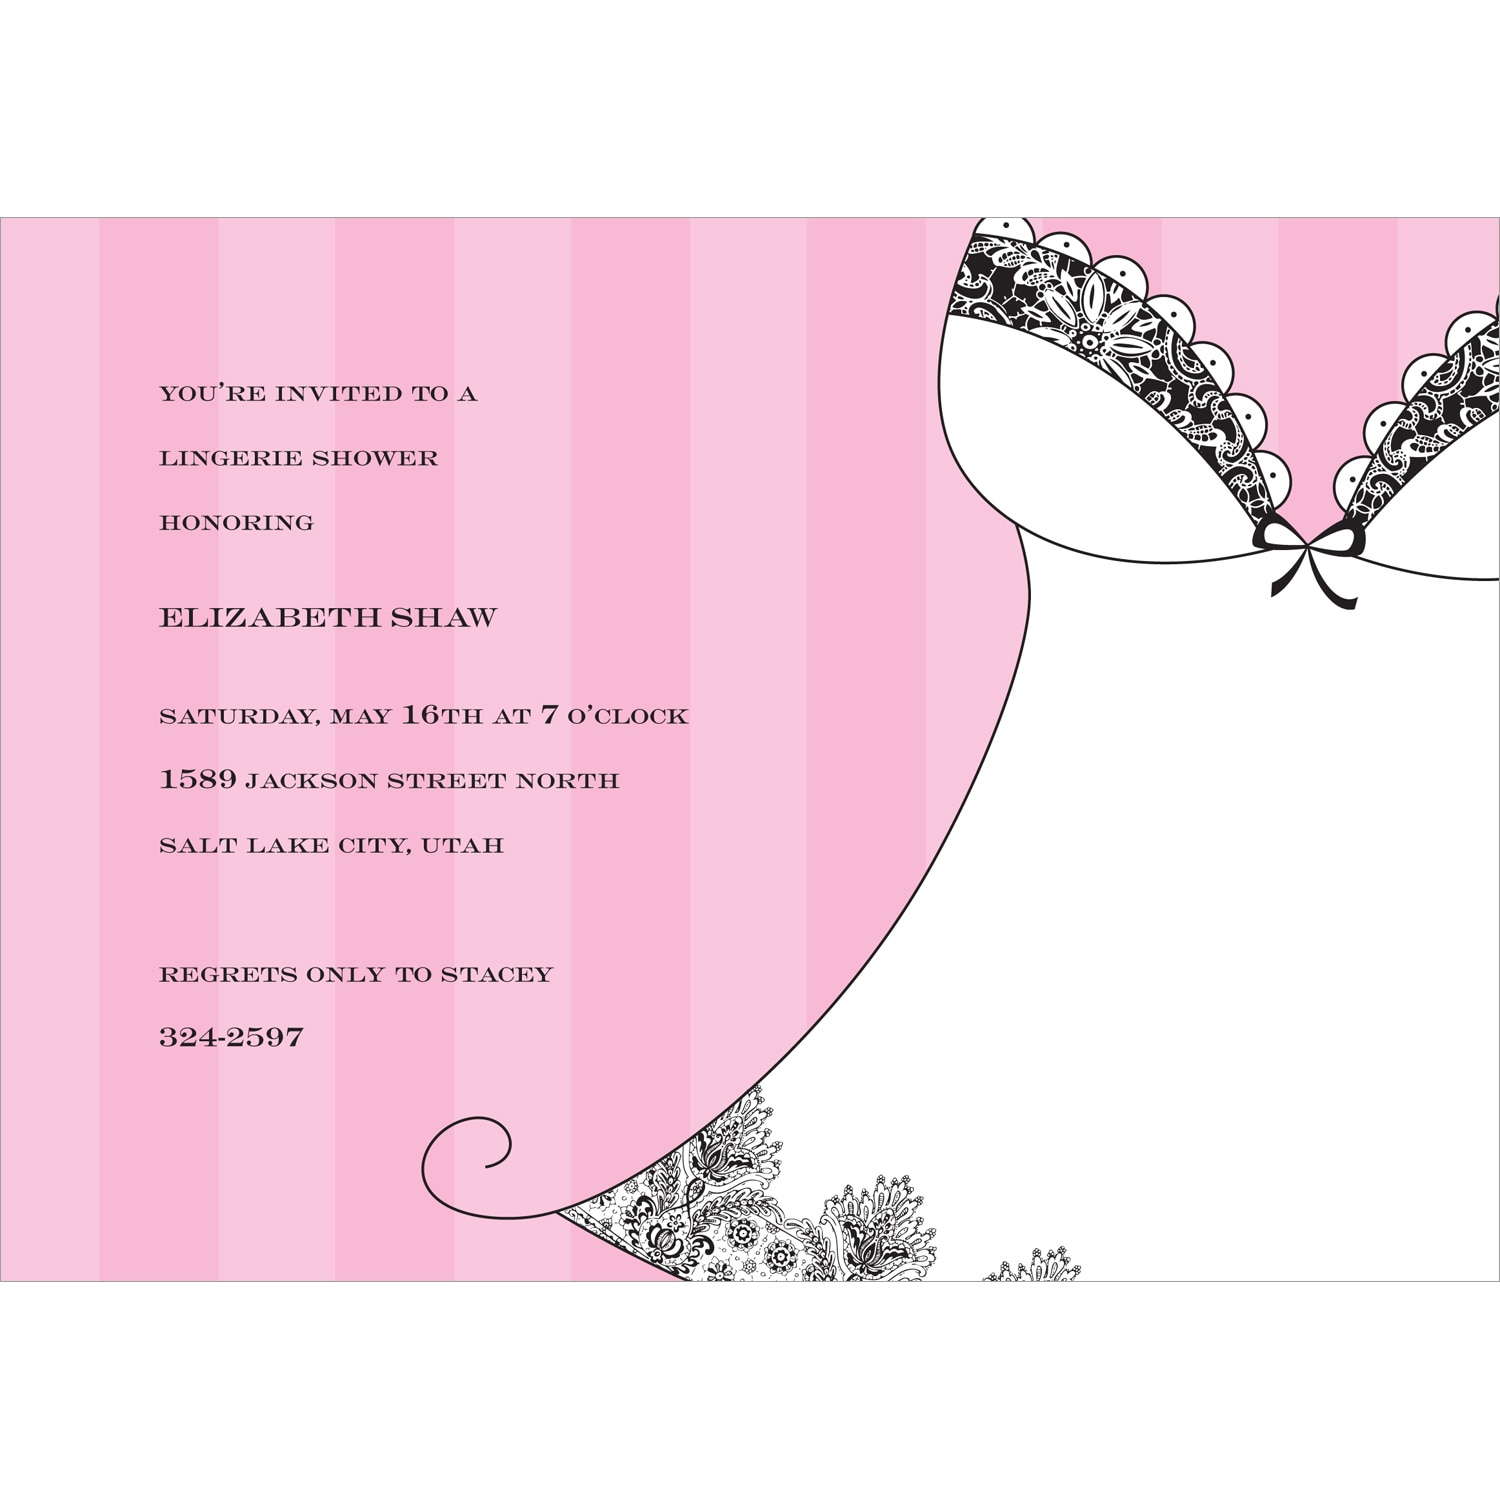 the gift fun shower free for cheap ideas lingerie bride or bridal